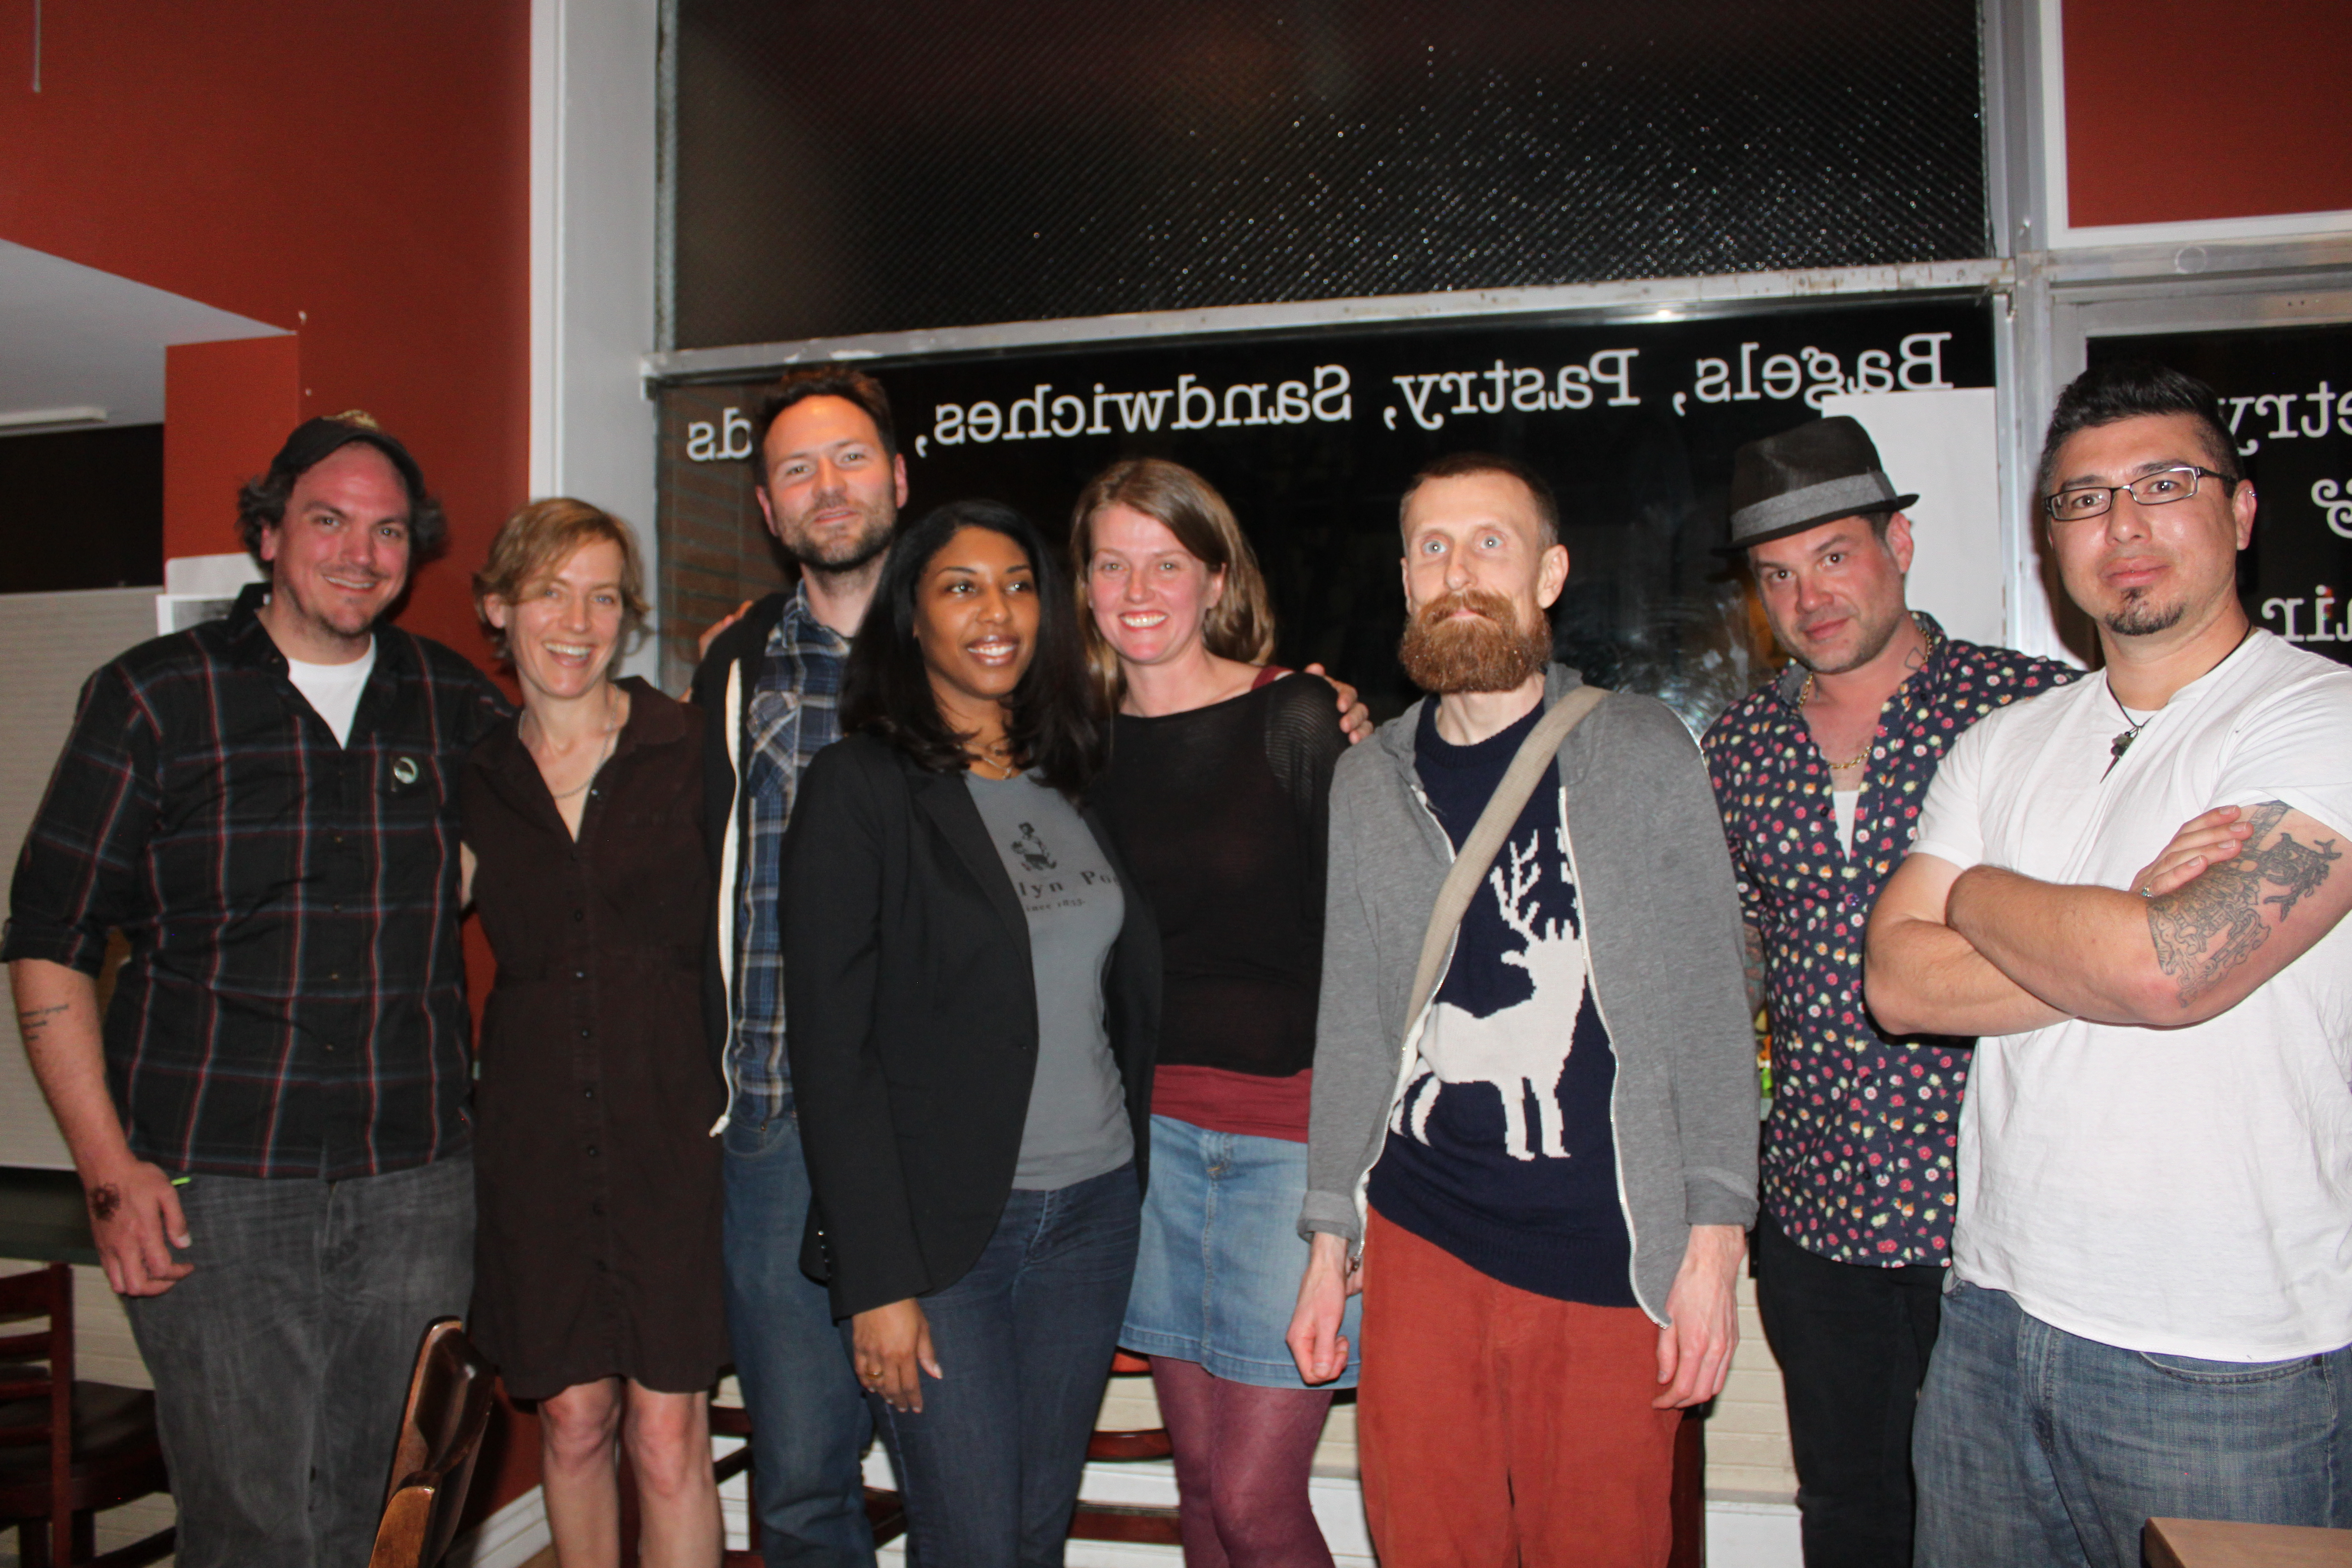 Joshua Marie Wilkinson with Mathias Svalina, Julie Carr, Khadijah Queen, Sommer Browning, Eric Baus, Noah Eli Gordon, & J. Michael Martinez in Boulder, CO 2015